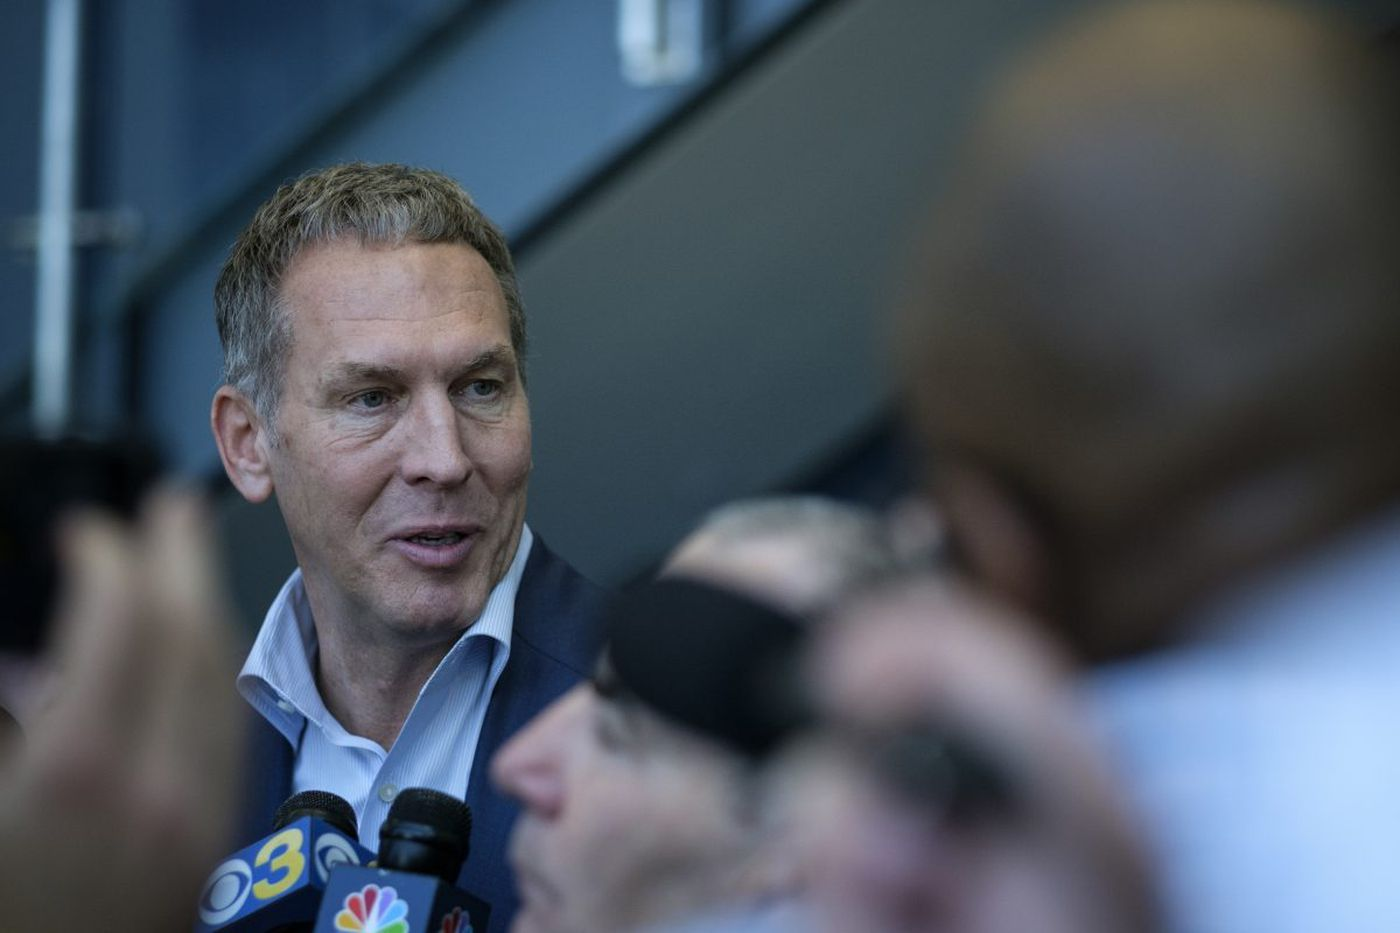 Even if Bryan Colangelo is not responsible for Twitter accounts, the NBA is losing trust in him